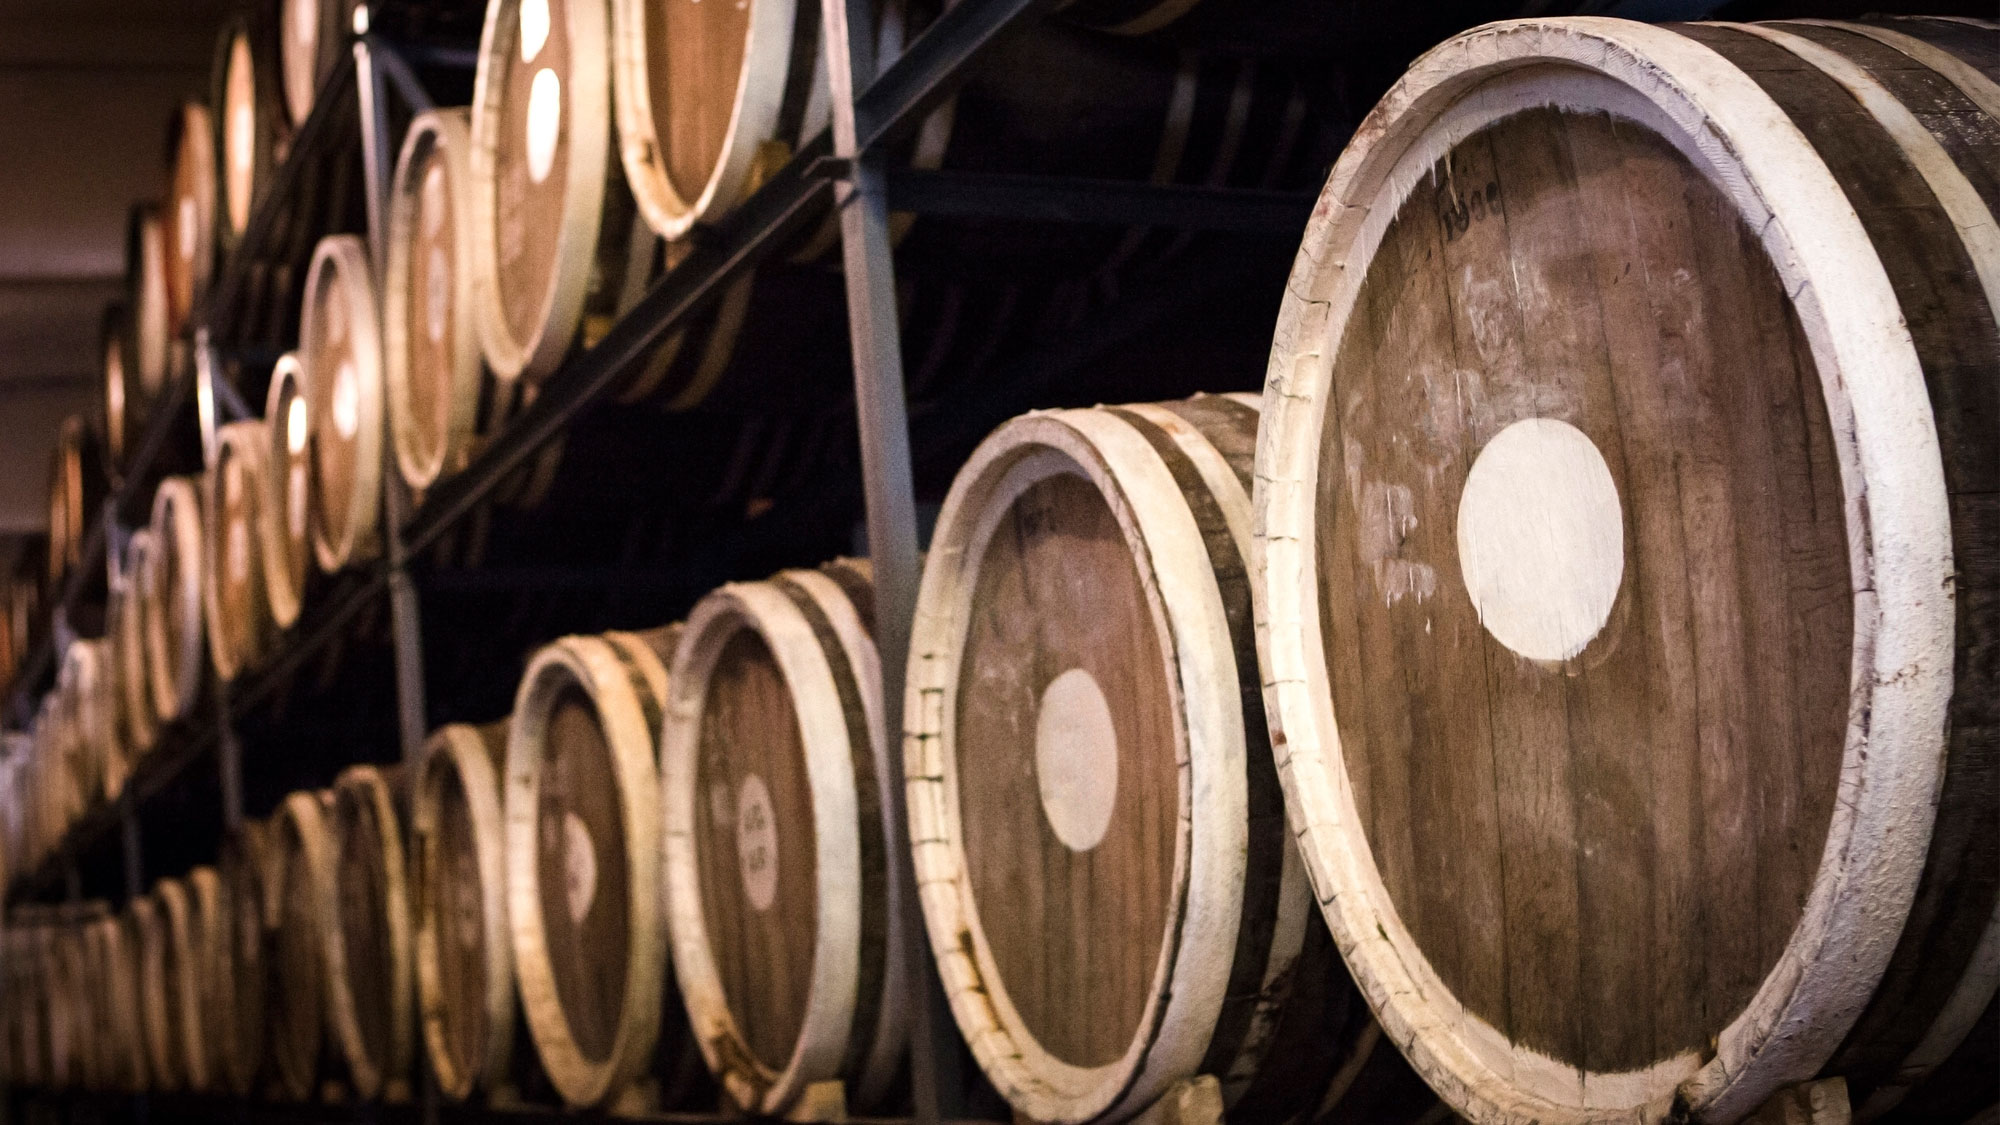 6 Distillery Tours You Need to Book Now